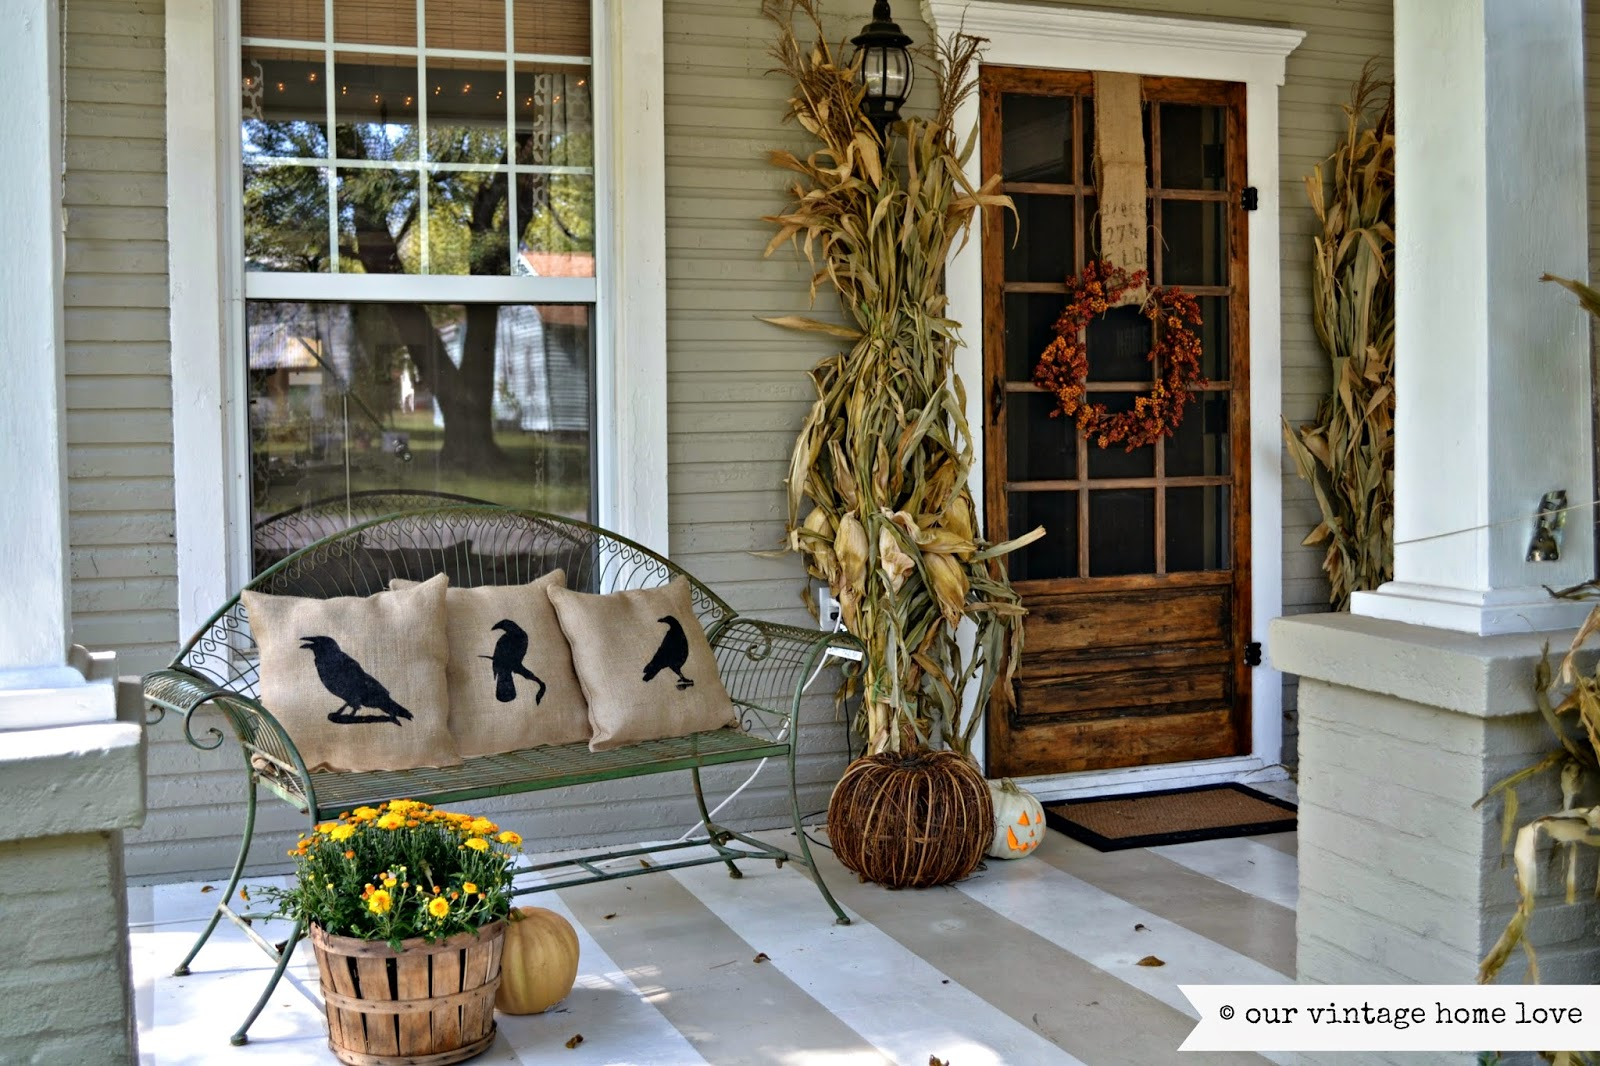 Uncategorized Fall Porch Decorating Ideas Pictures our vintage home love fall porch ideas tuesday october 1 2013